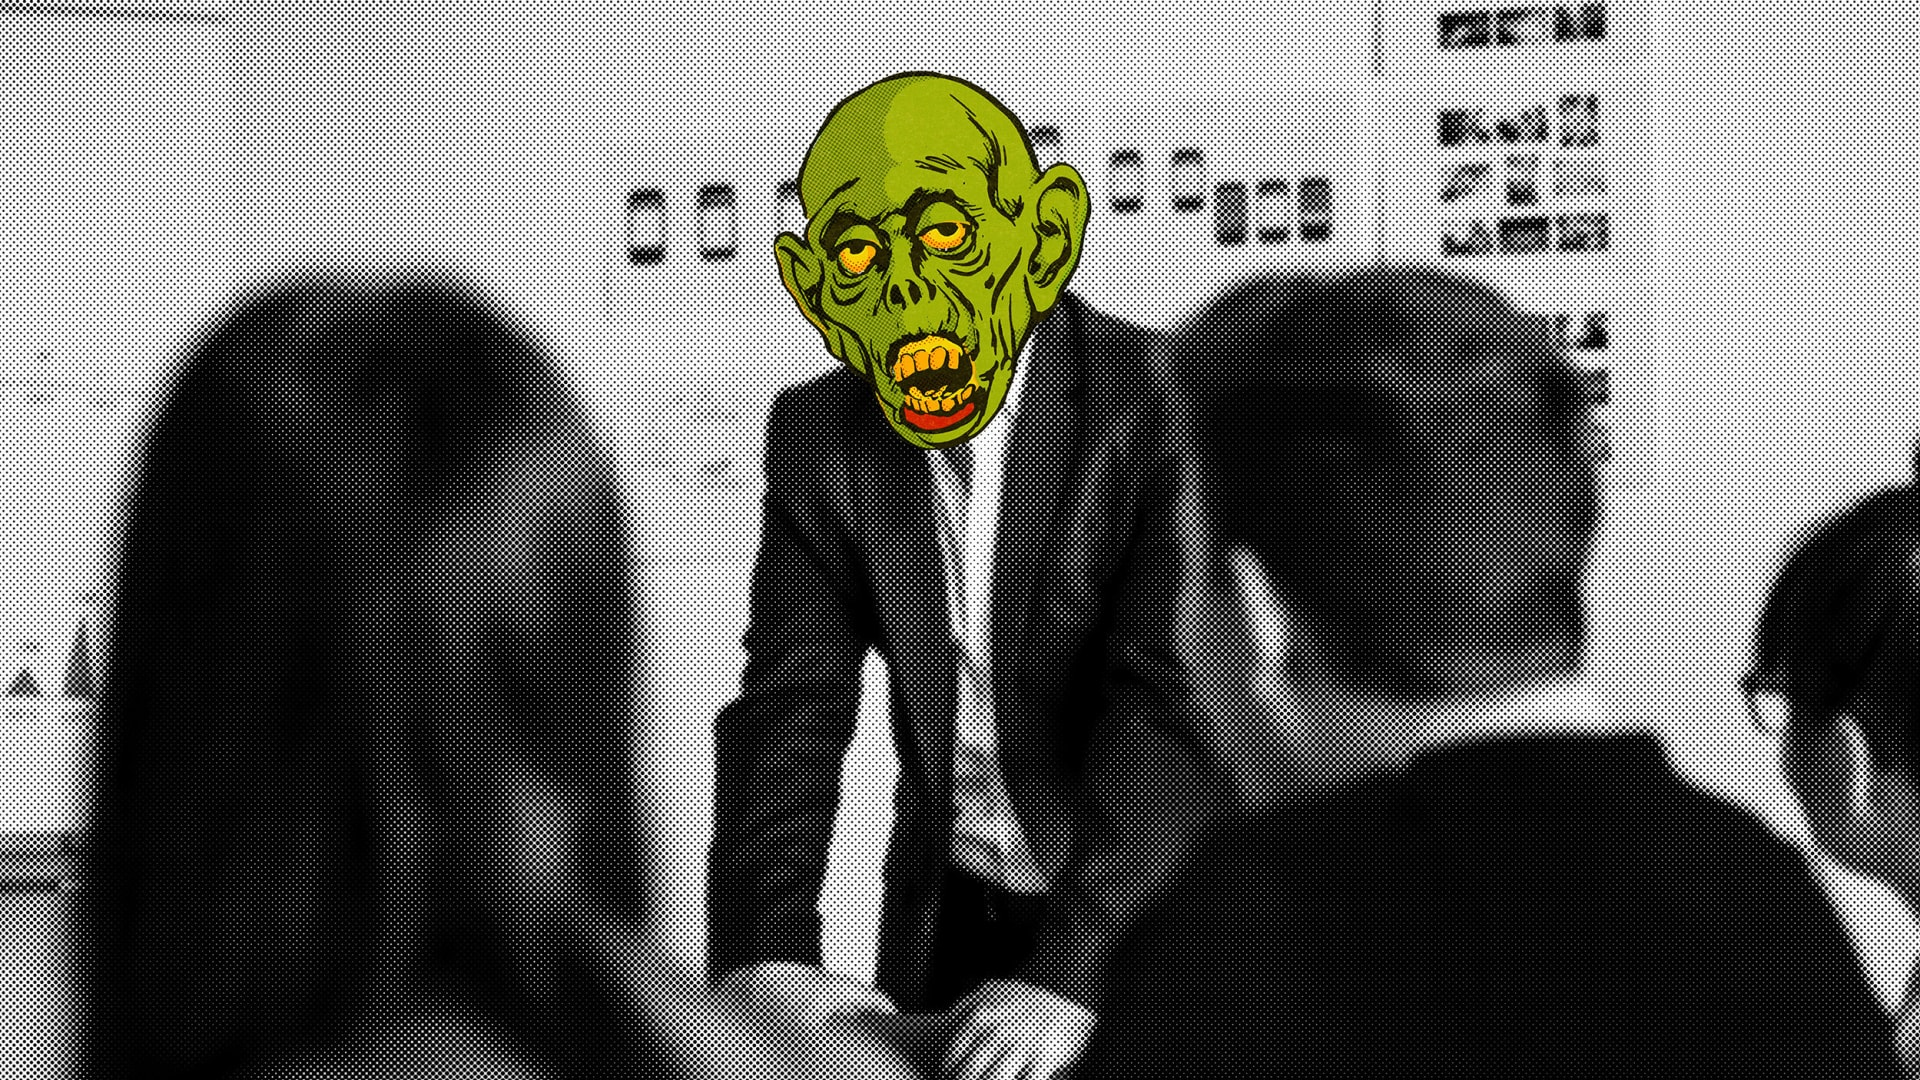 How Do You Know if You Work for a Toxic Boss? They May Be Doing Any of These 6 Things Daily